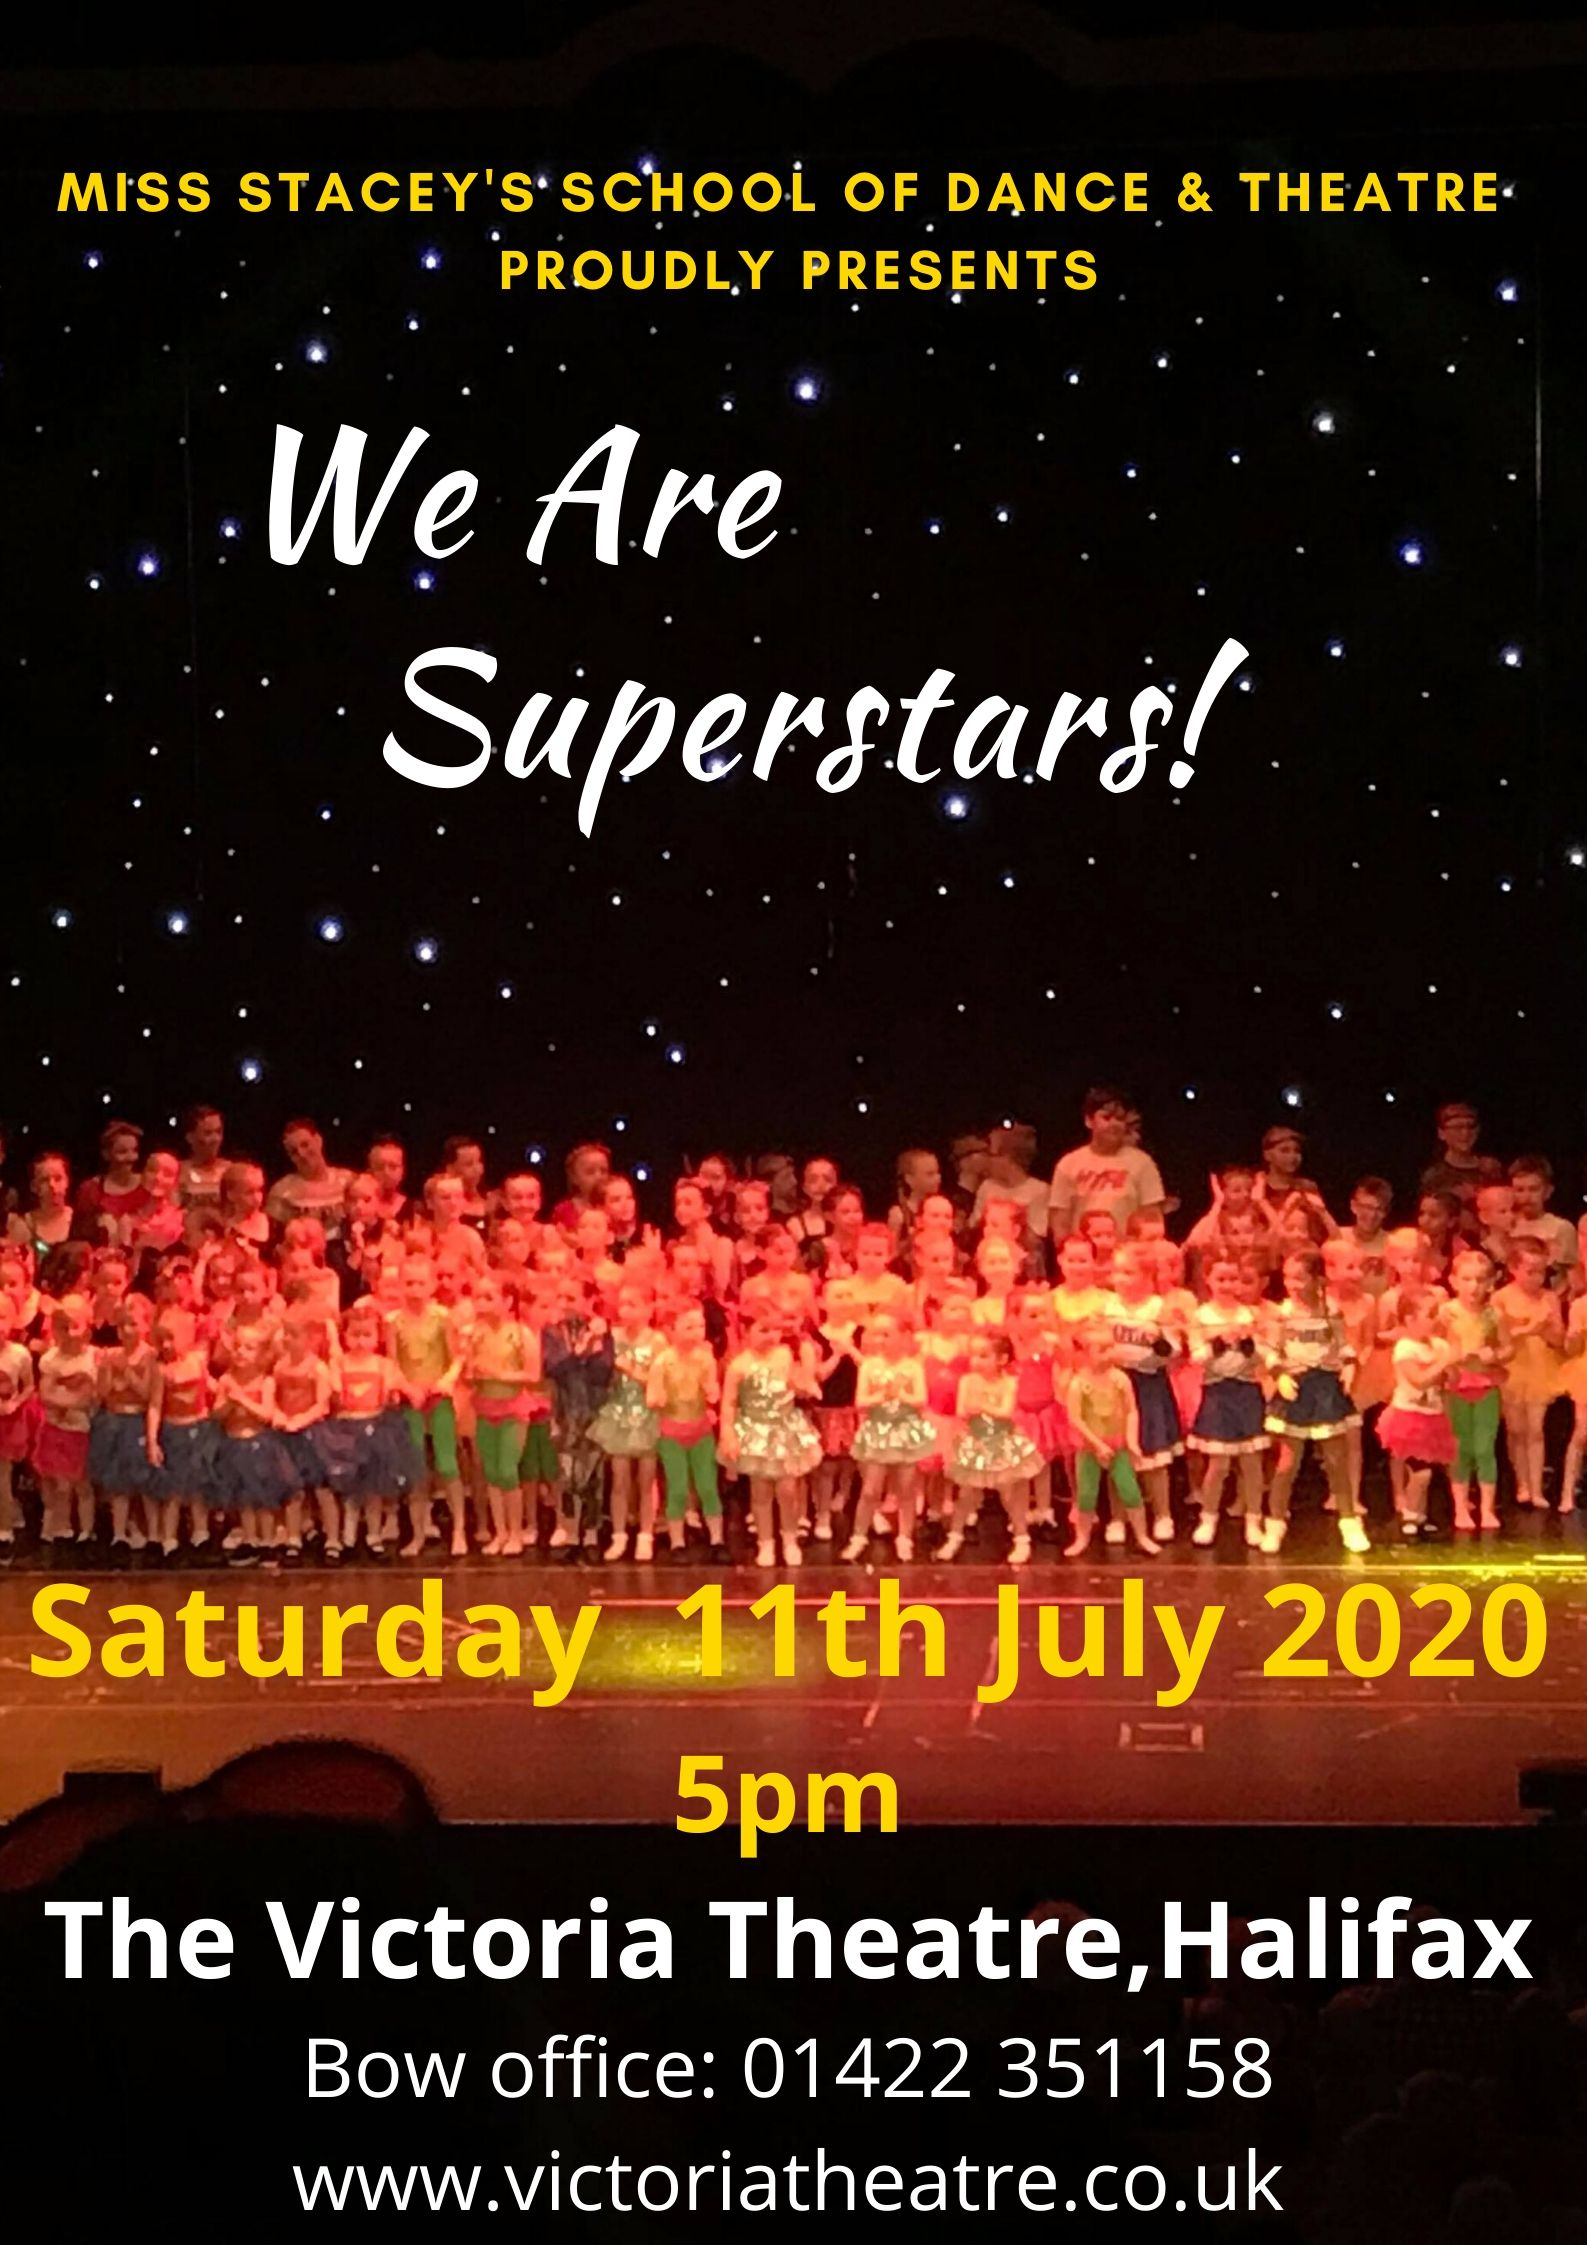 We Are Superstars